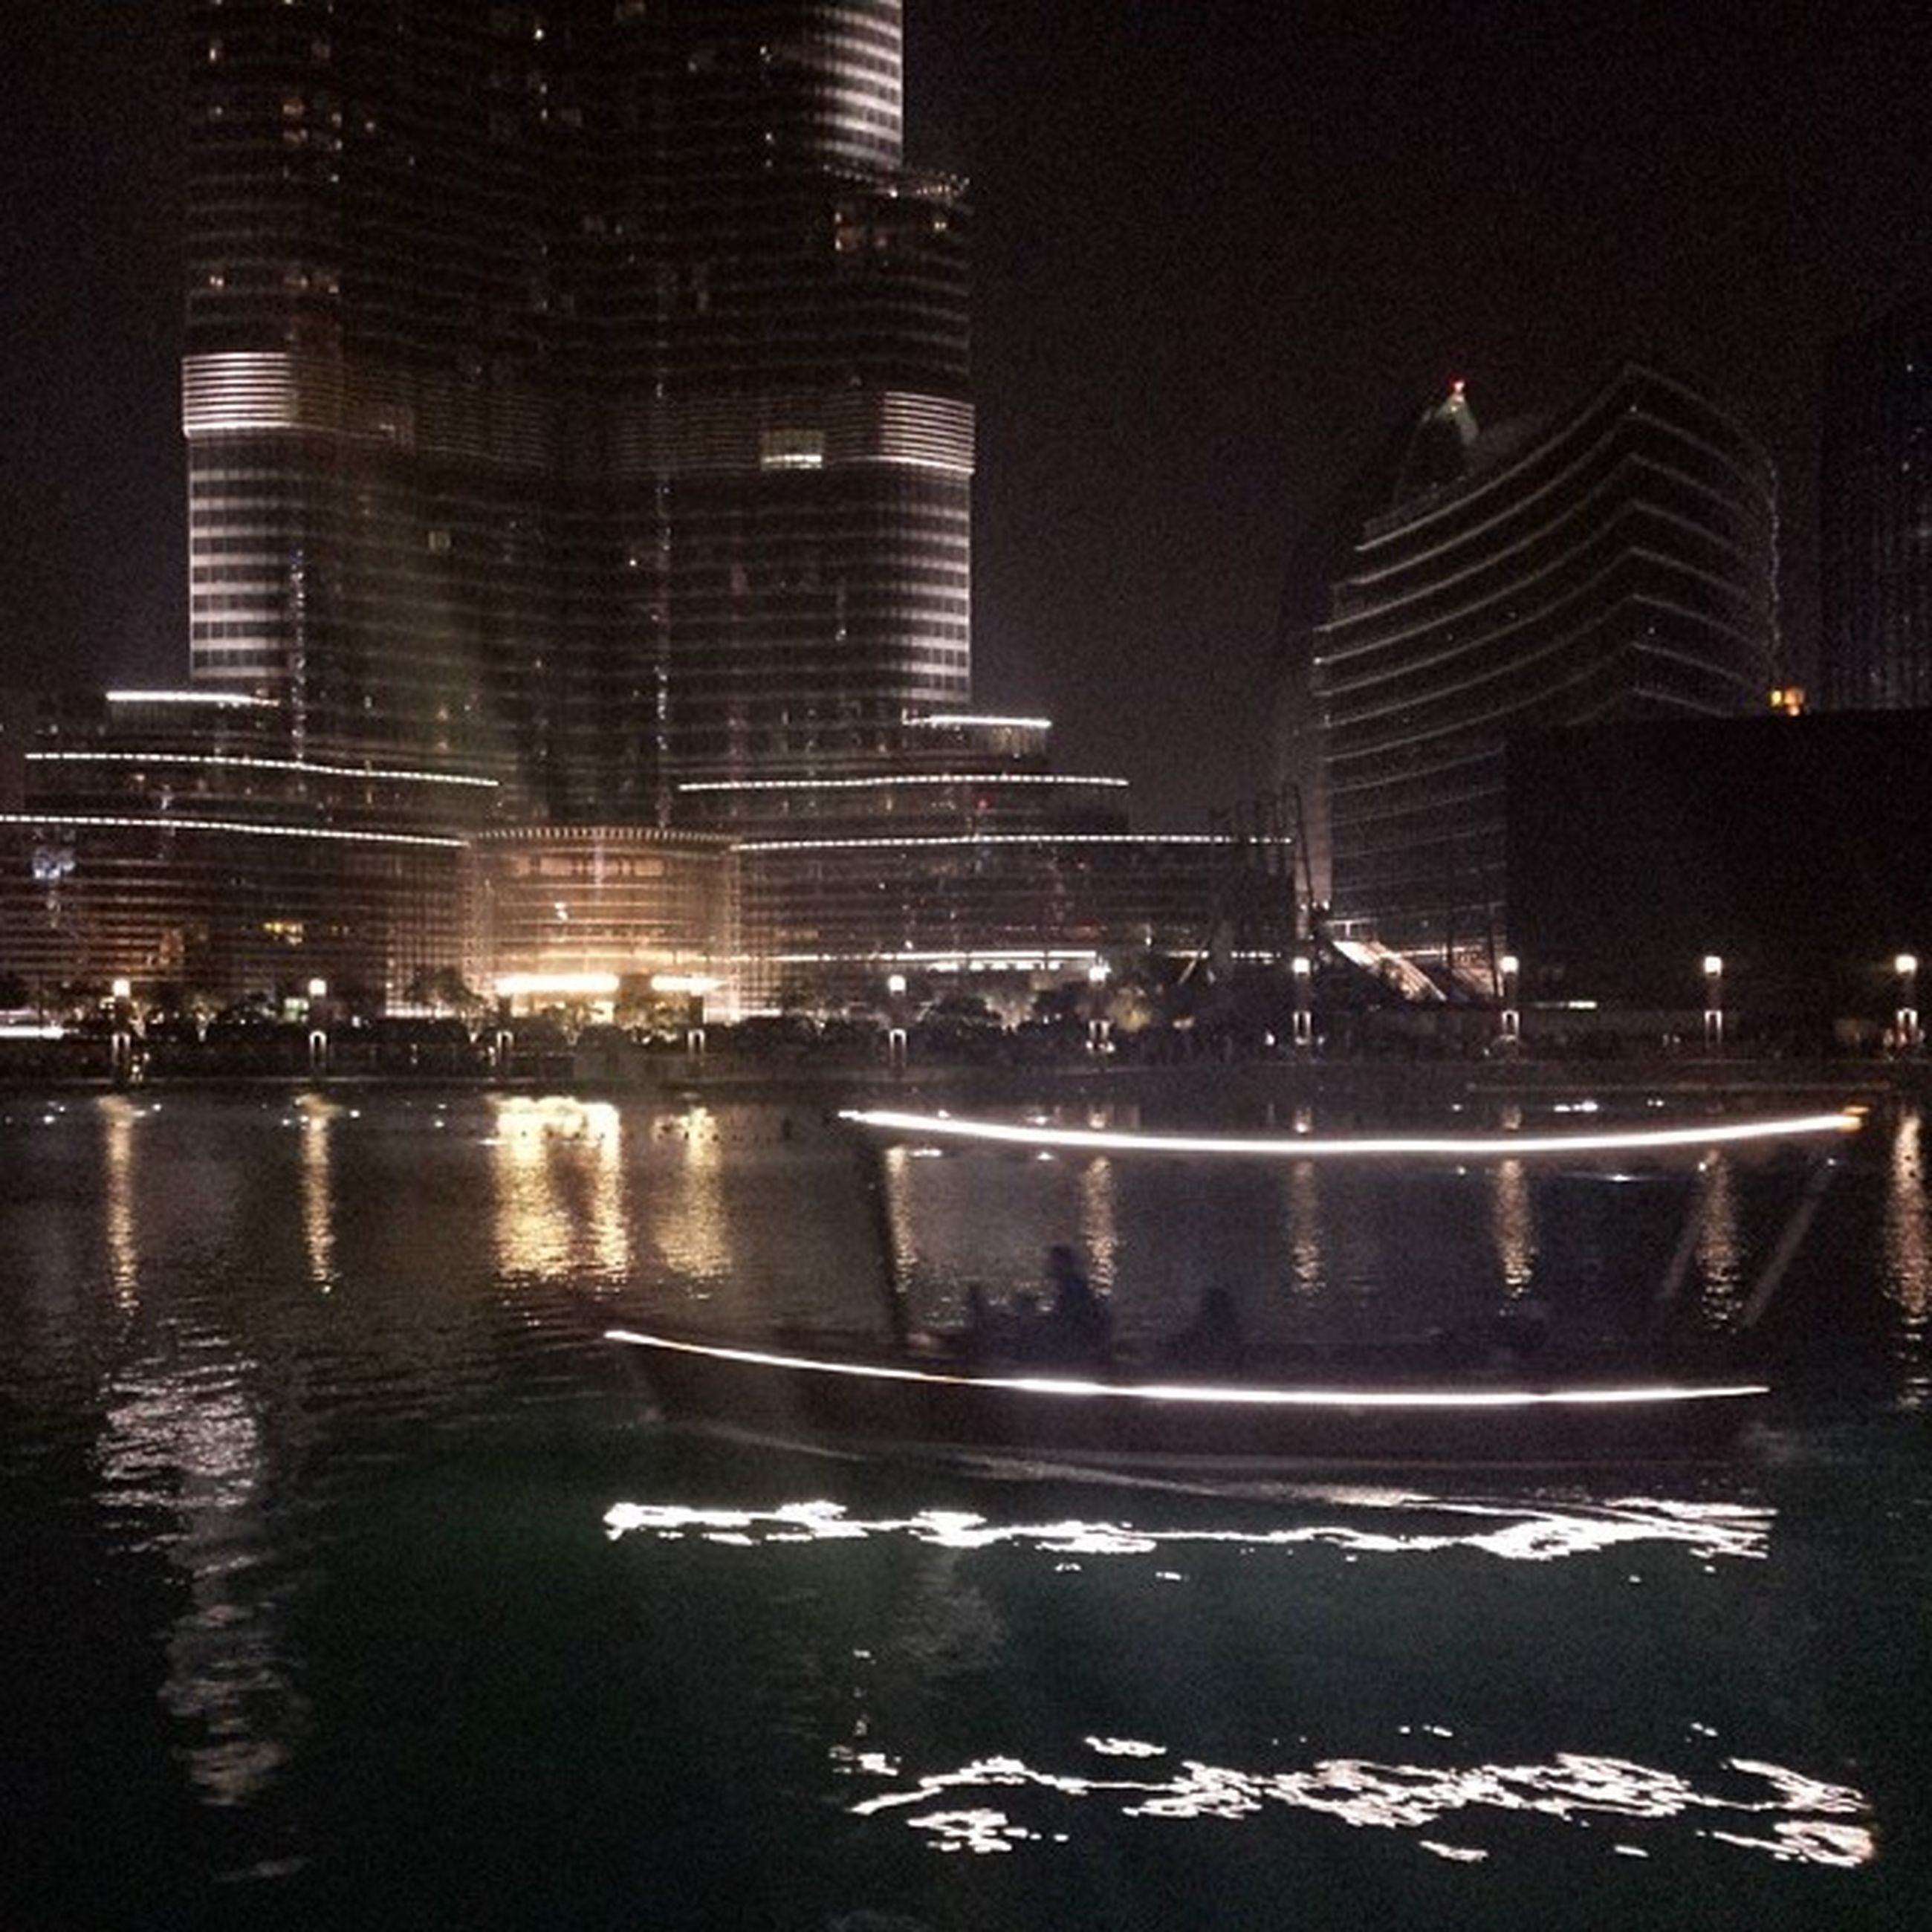 building exterior, city, architecture, night, built structure, illuminated, skyscraper, water, cityscape, office building, modern, reflection, tall - high, waterfront, building, city life, tower, urban skyline, street, river